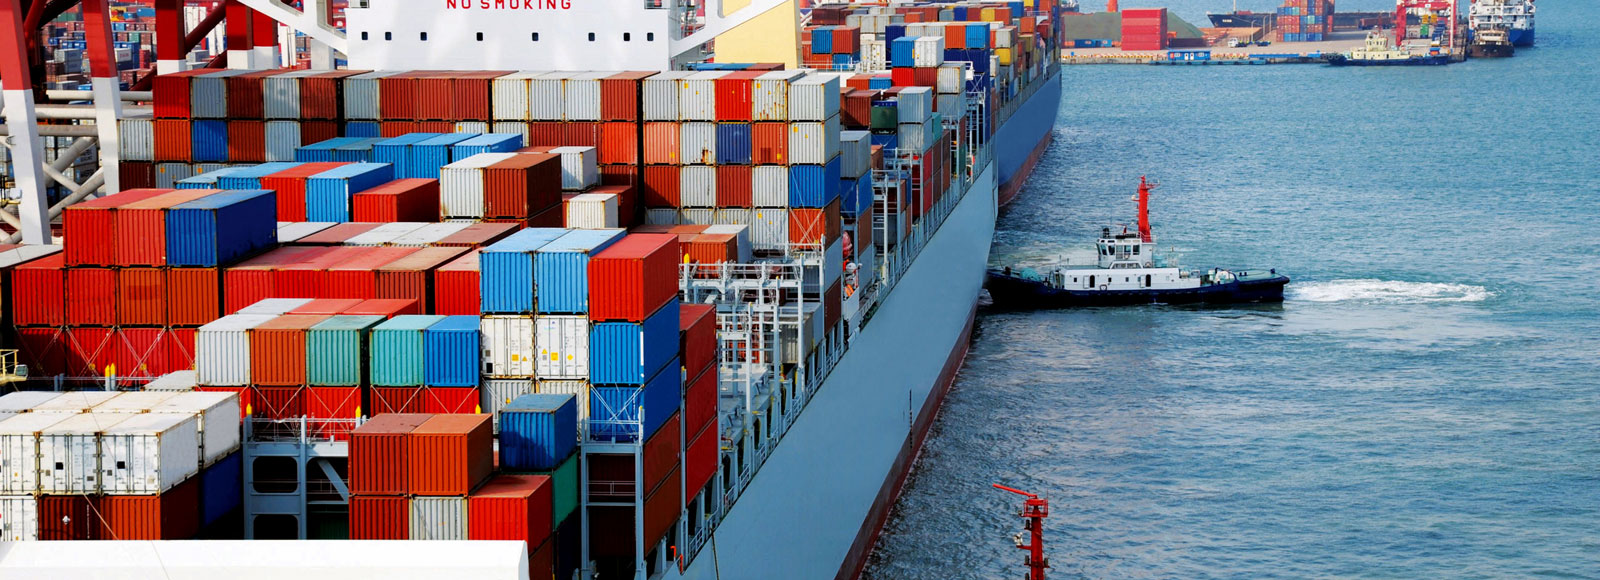 Container ship at a berthing port